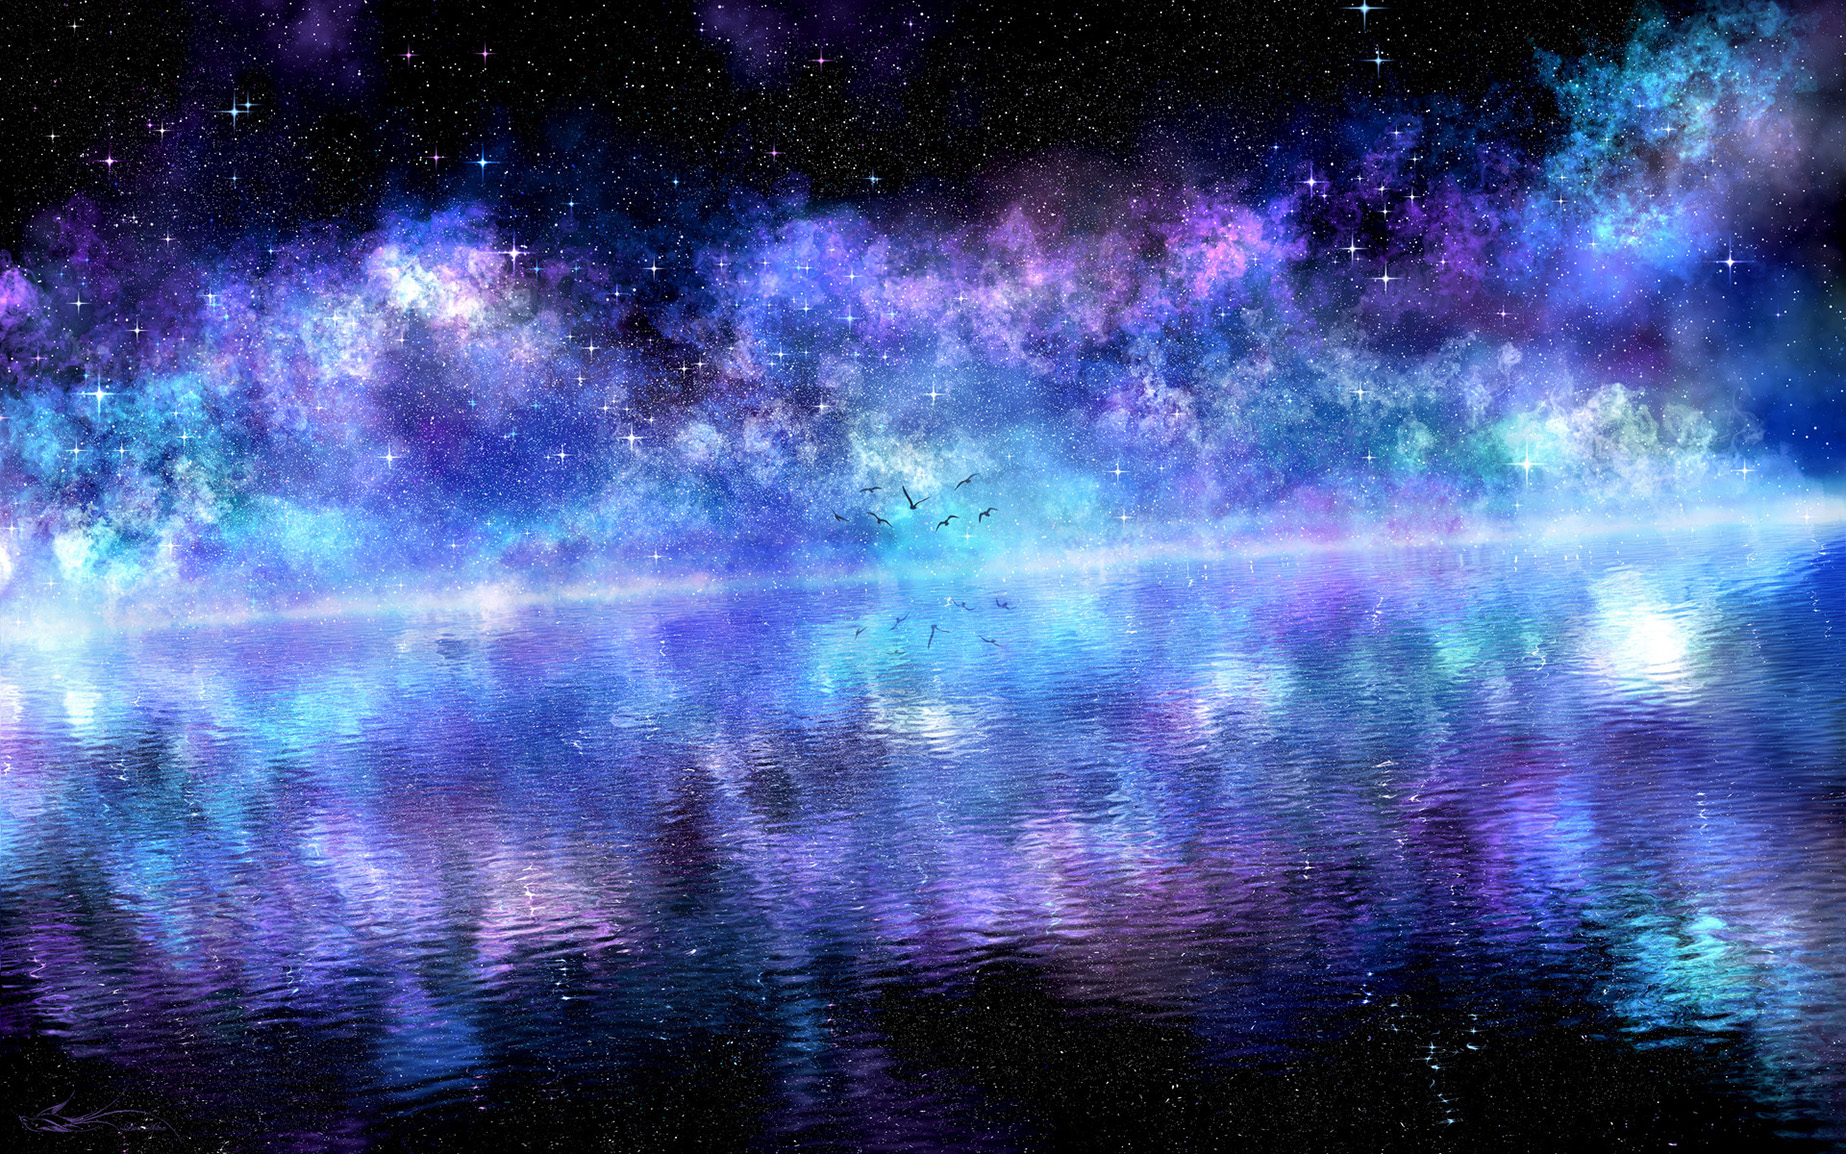 103727 download wallpaper Birds, Water, Art, Clouds, Shining, Reflection, Starry Sky, Surface, Purple screensavers and pictures for free